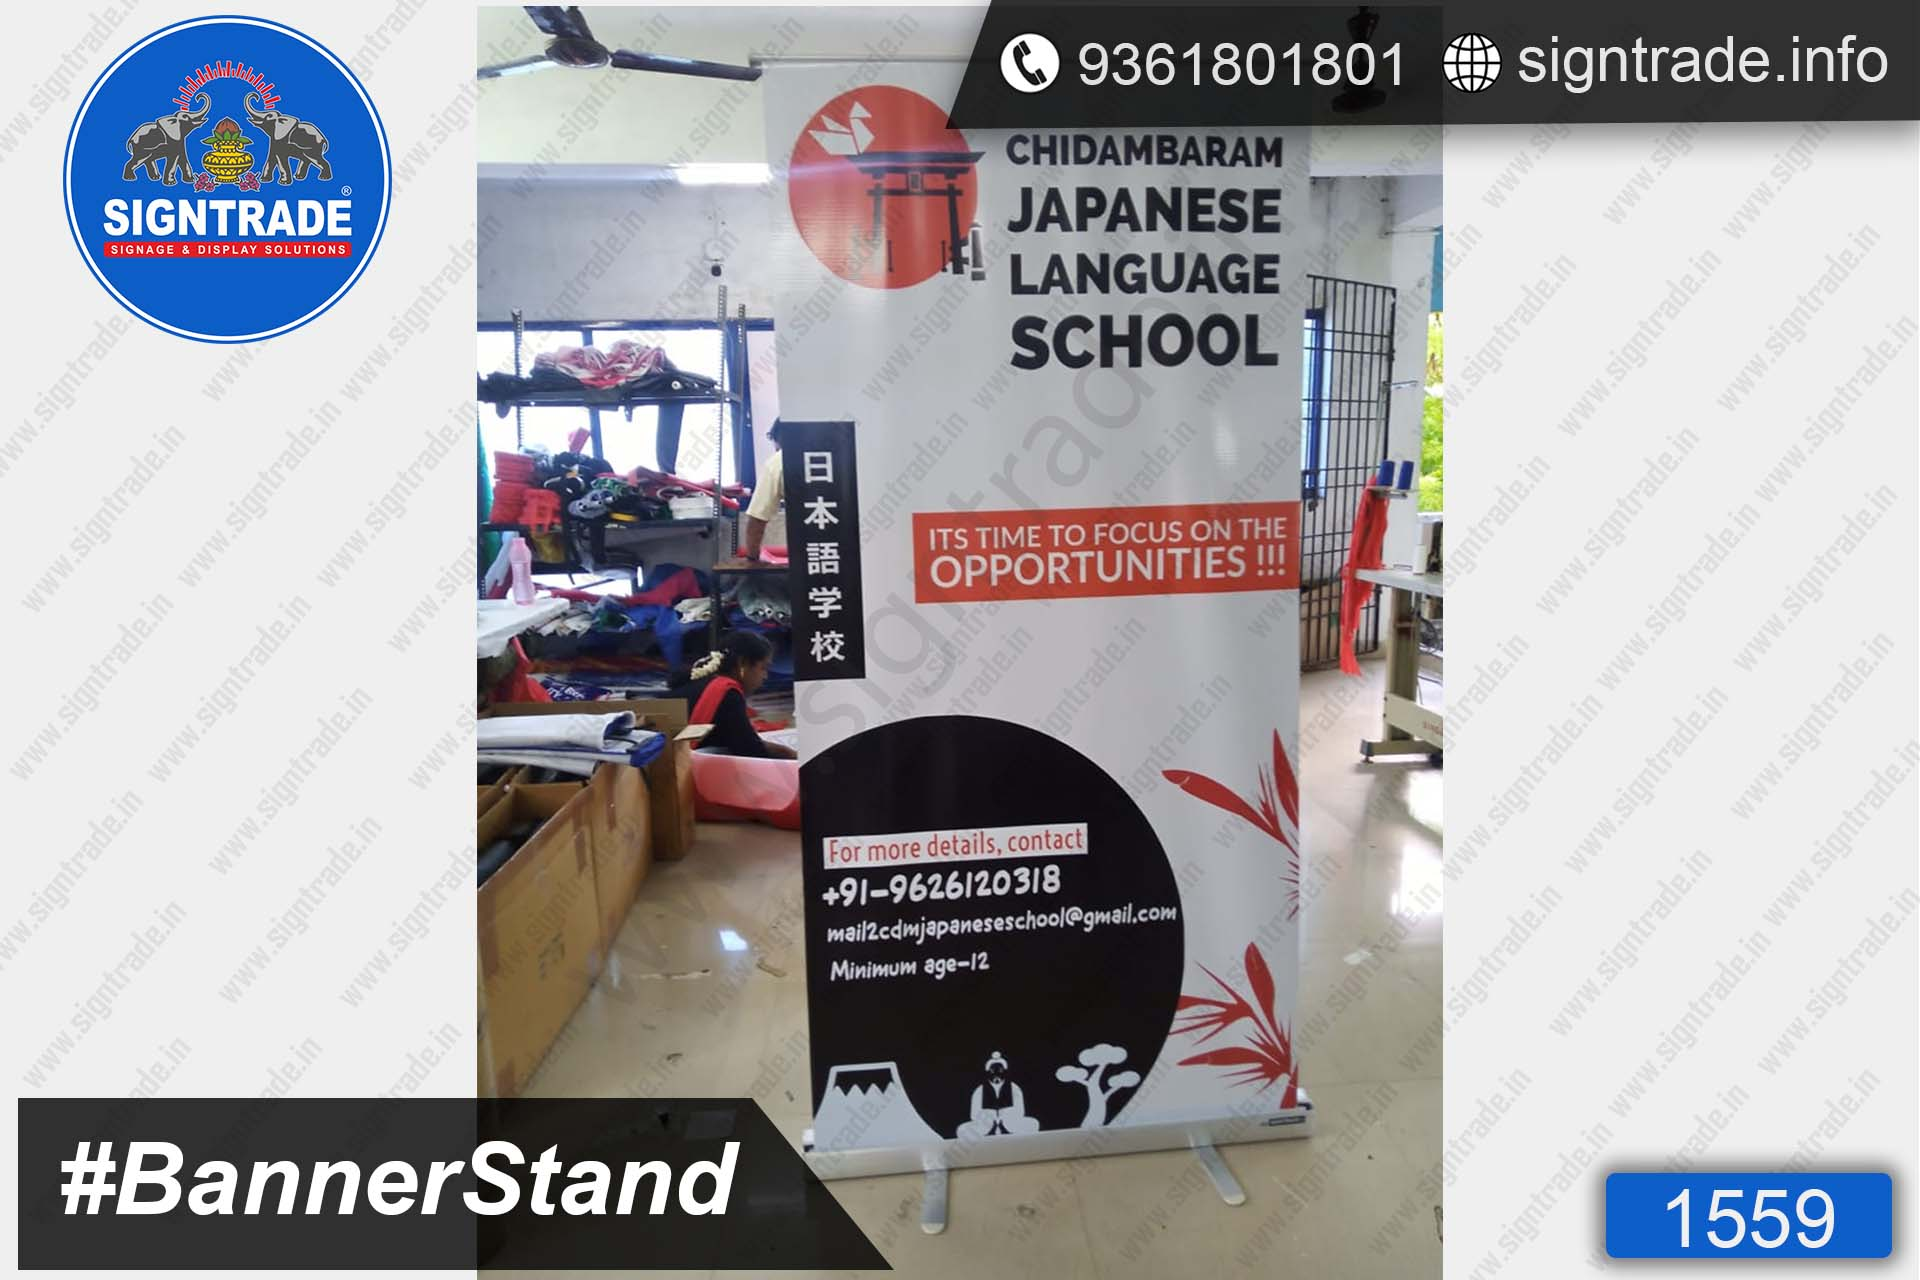 Chidambaram Japanese Language School - SIGNTRADE - Roll Up Banner Stand Manufacturers in Chennai